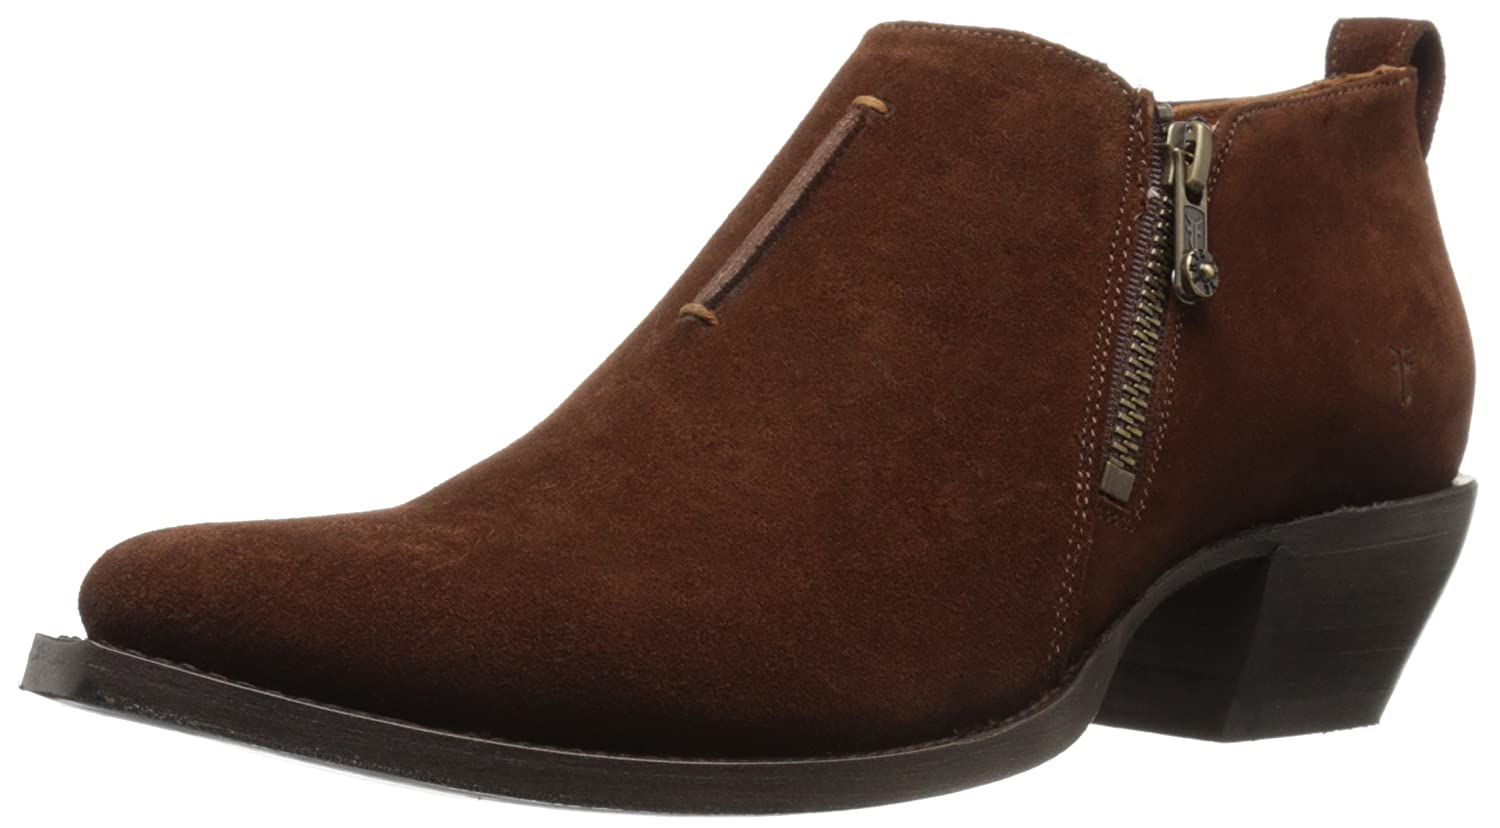 FRYE Women's Sacha Moto Shootie Suede Boot B01944BDC6 9 M US|Brown